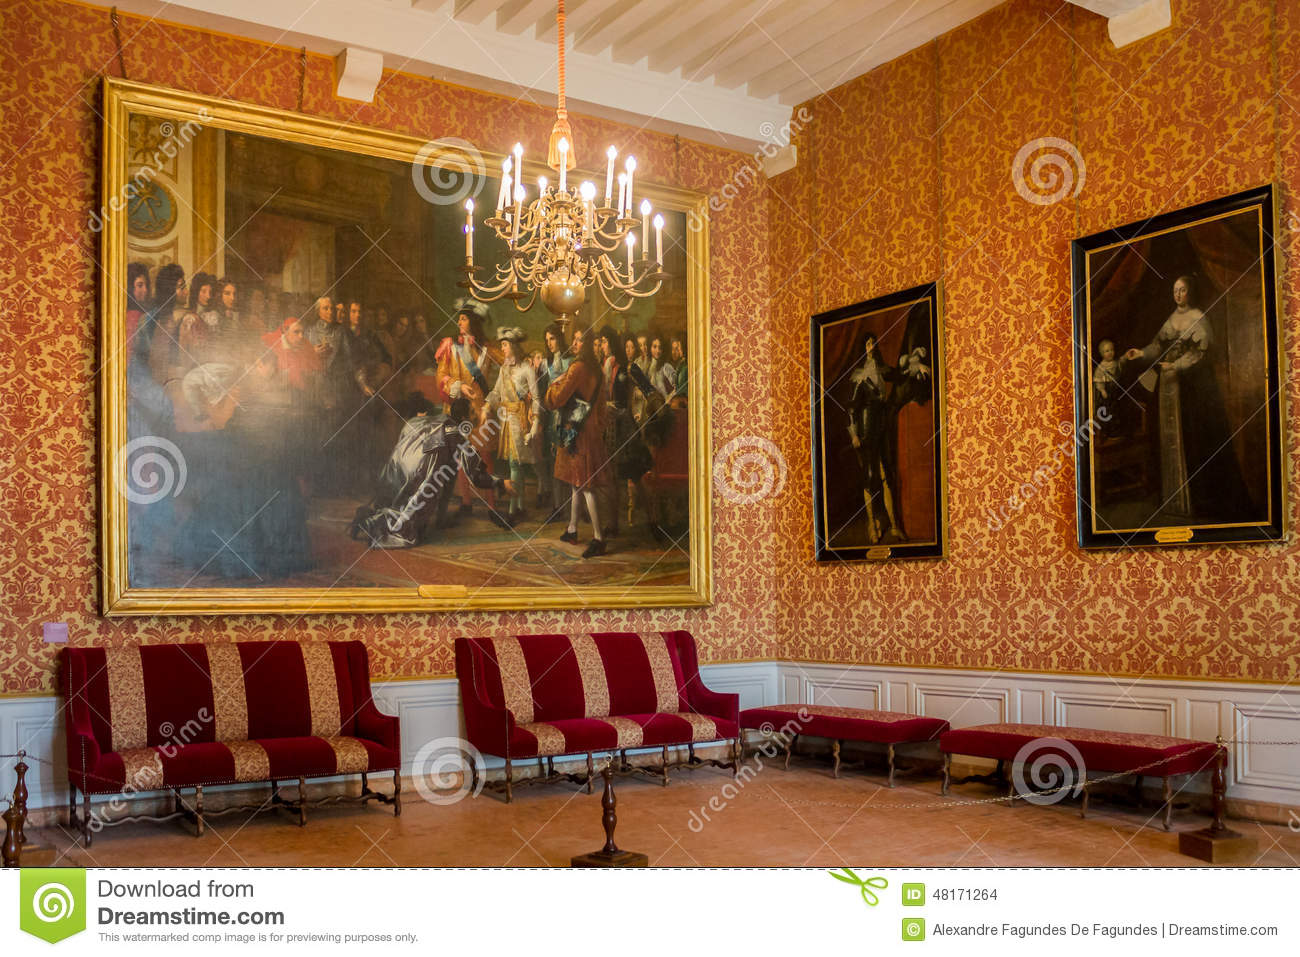 chambord castle france editorial stock image - image: 48171264